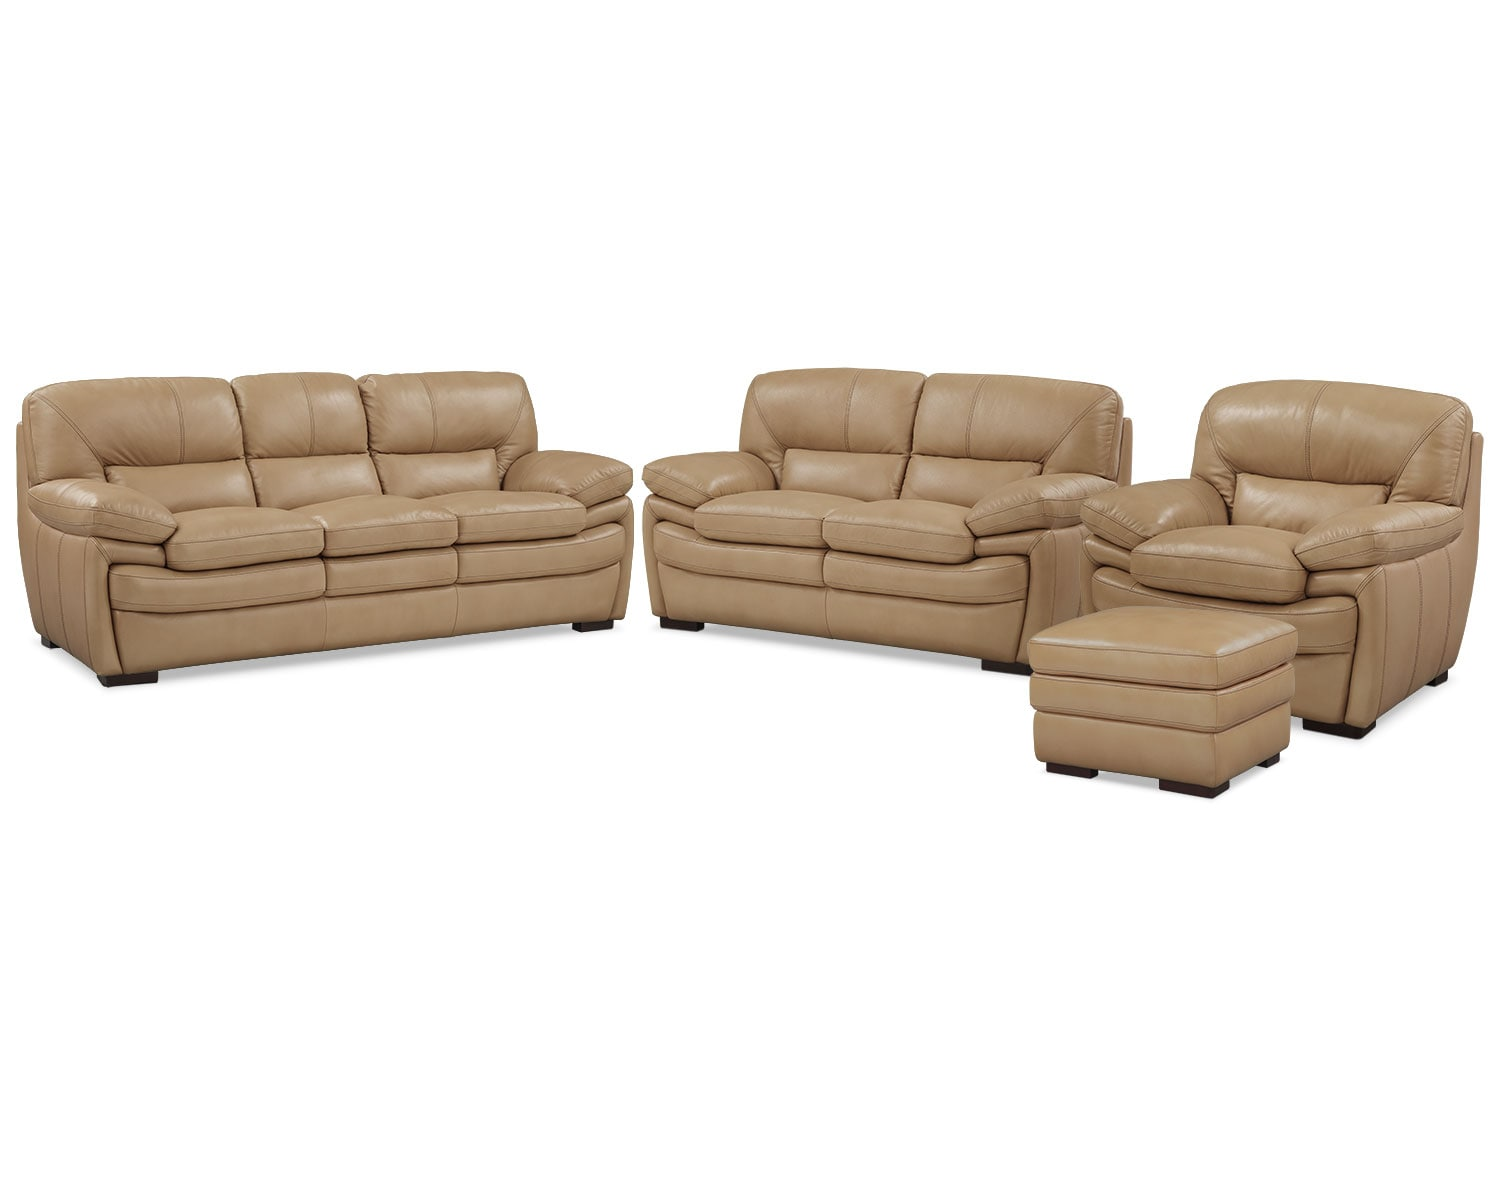 The Peyton Collection - Taupe